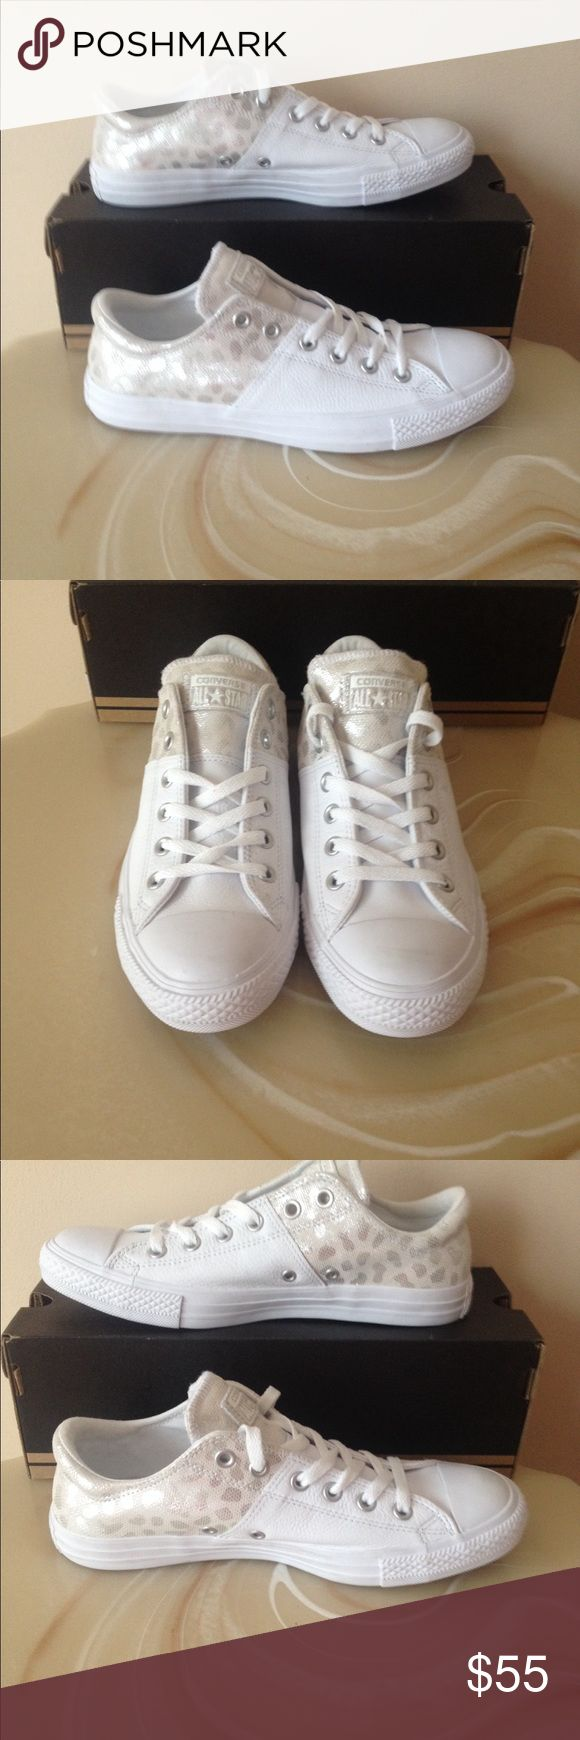 NWT woman's converse shoes with silver dots Comes with no lid Converse Shoes Sneakers